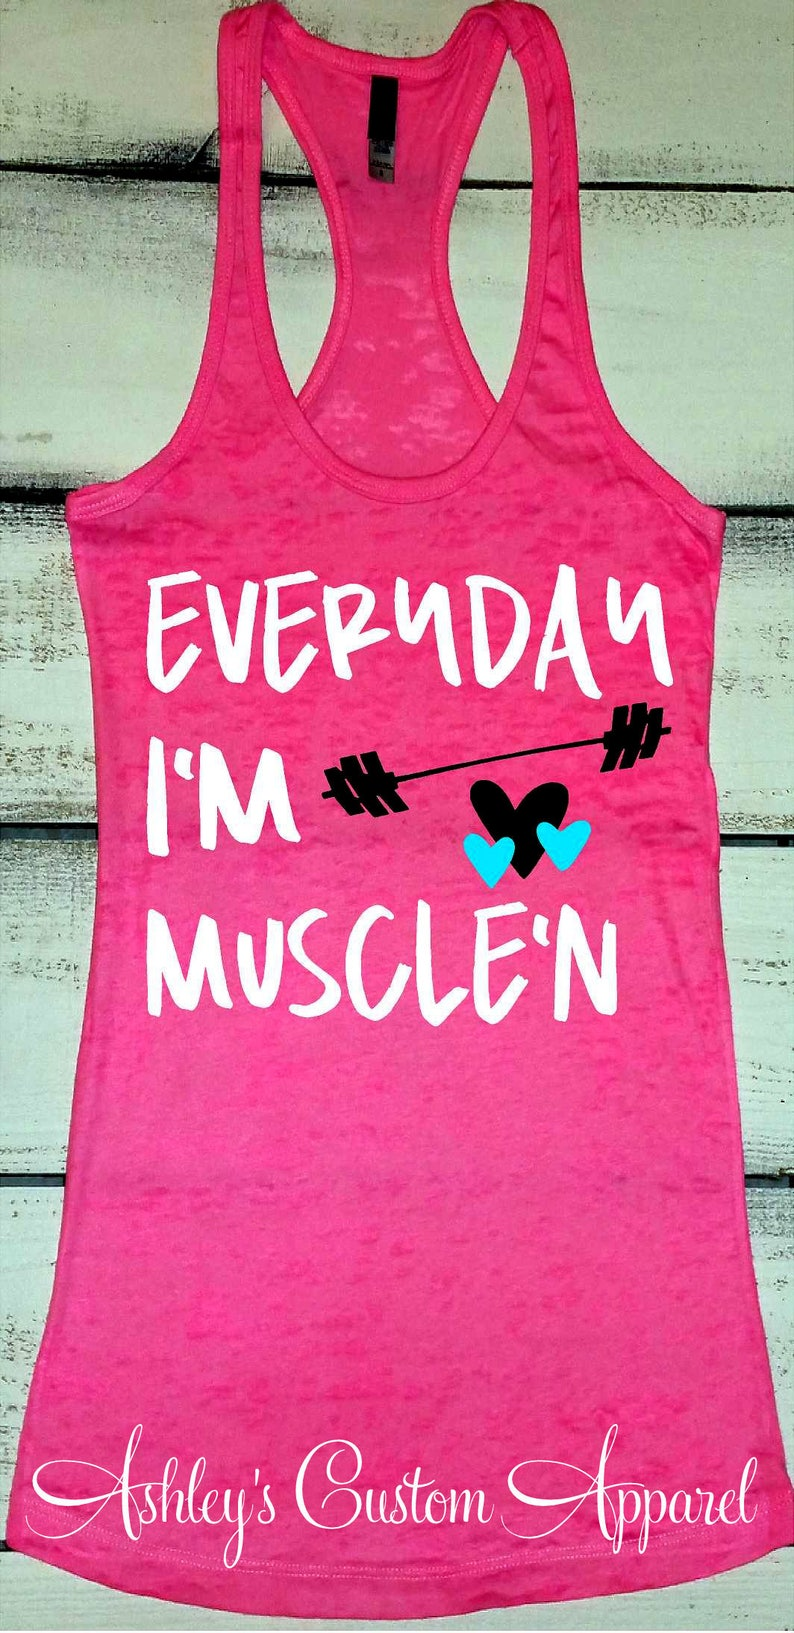 b8ea63c5275462 Funny Workout Shirt Women s Workout Tanks Personal Trainer